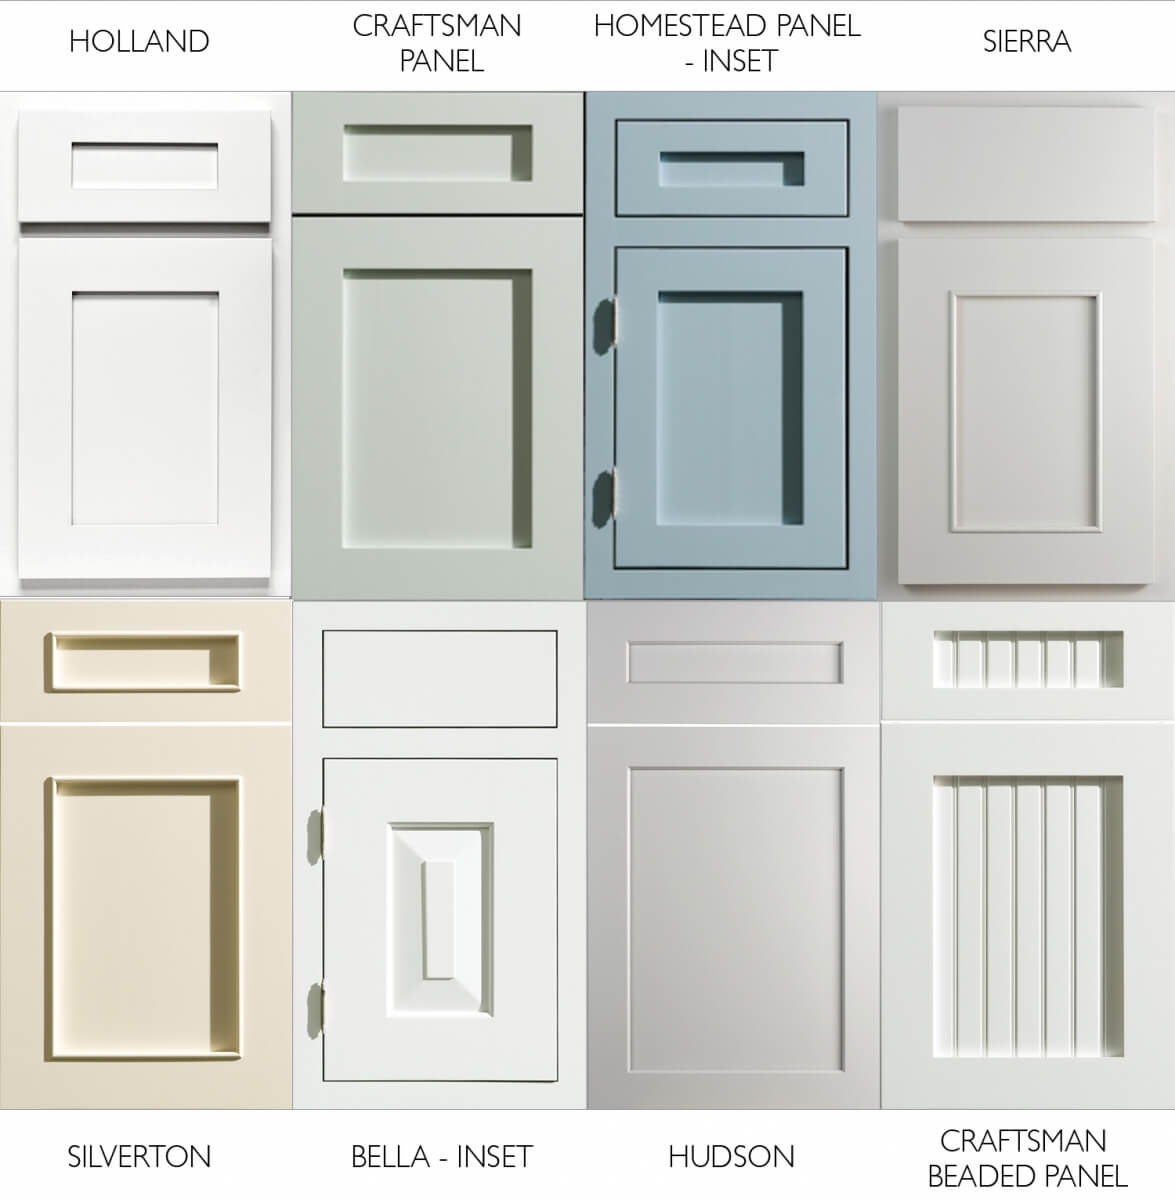 A collection of cottage style cabinet doors for planning a kitchen remodel project. Kitchen cabinet doors from Dura Supreme Cabinetry.